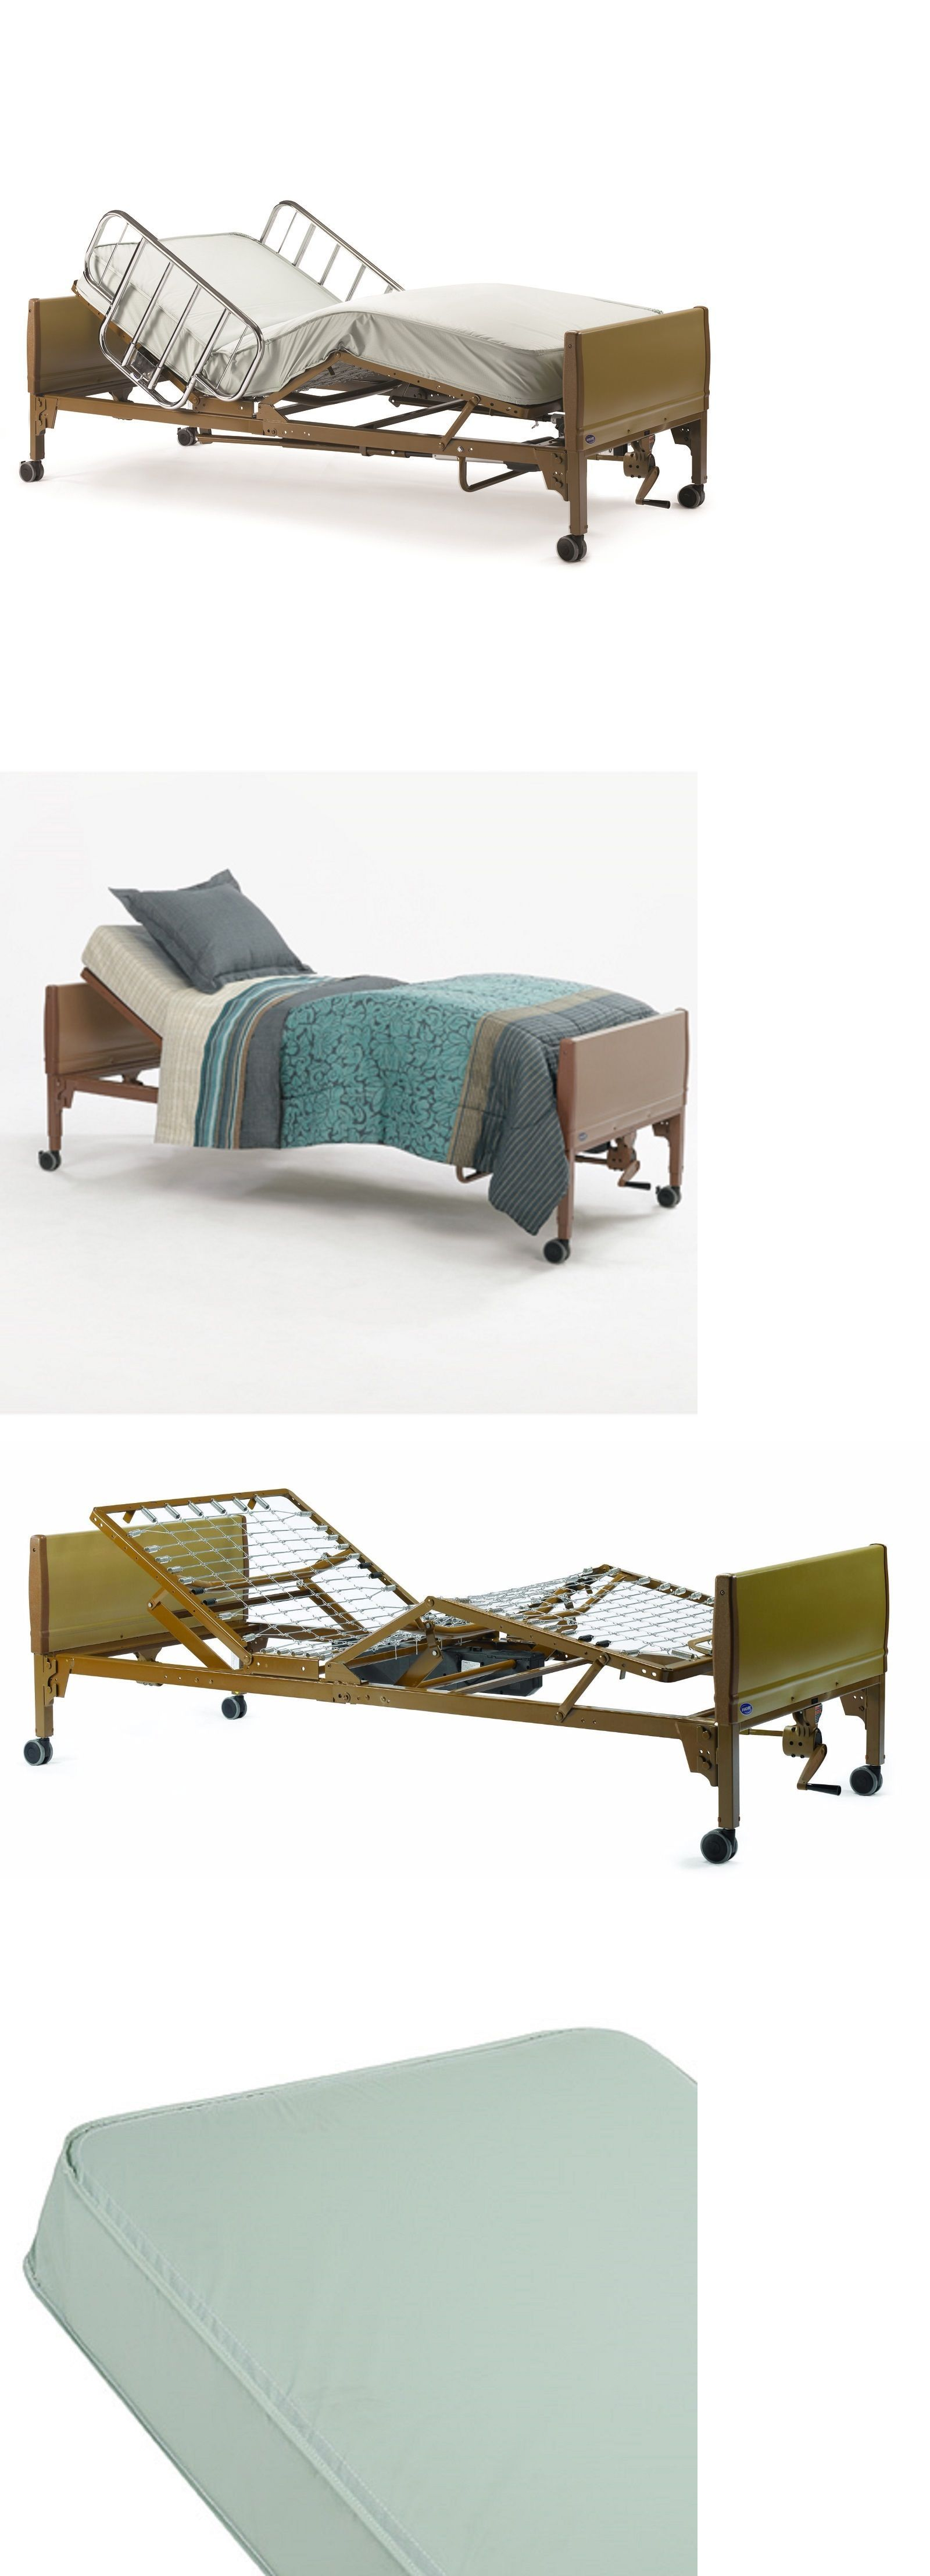 Other Mobility and Disability Hospital Bed By Invacare